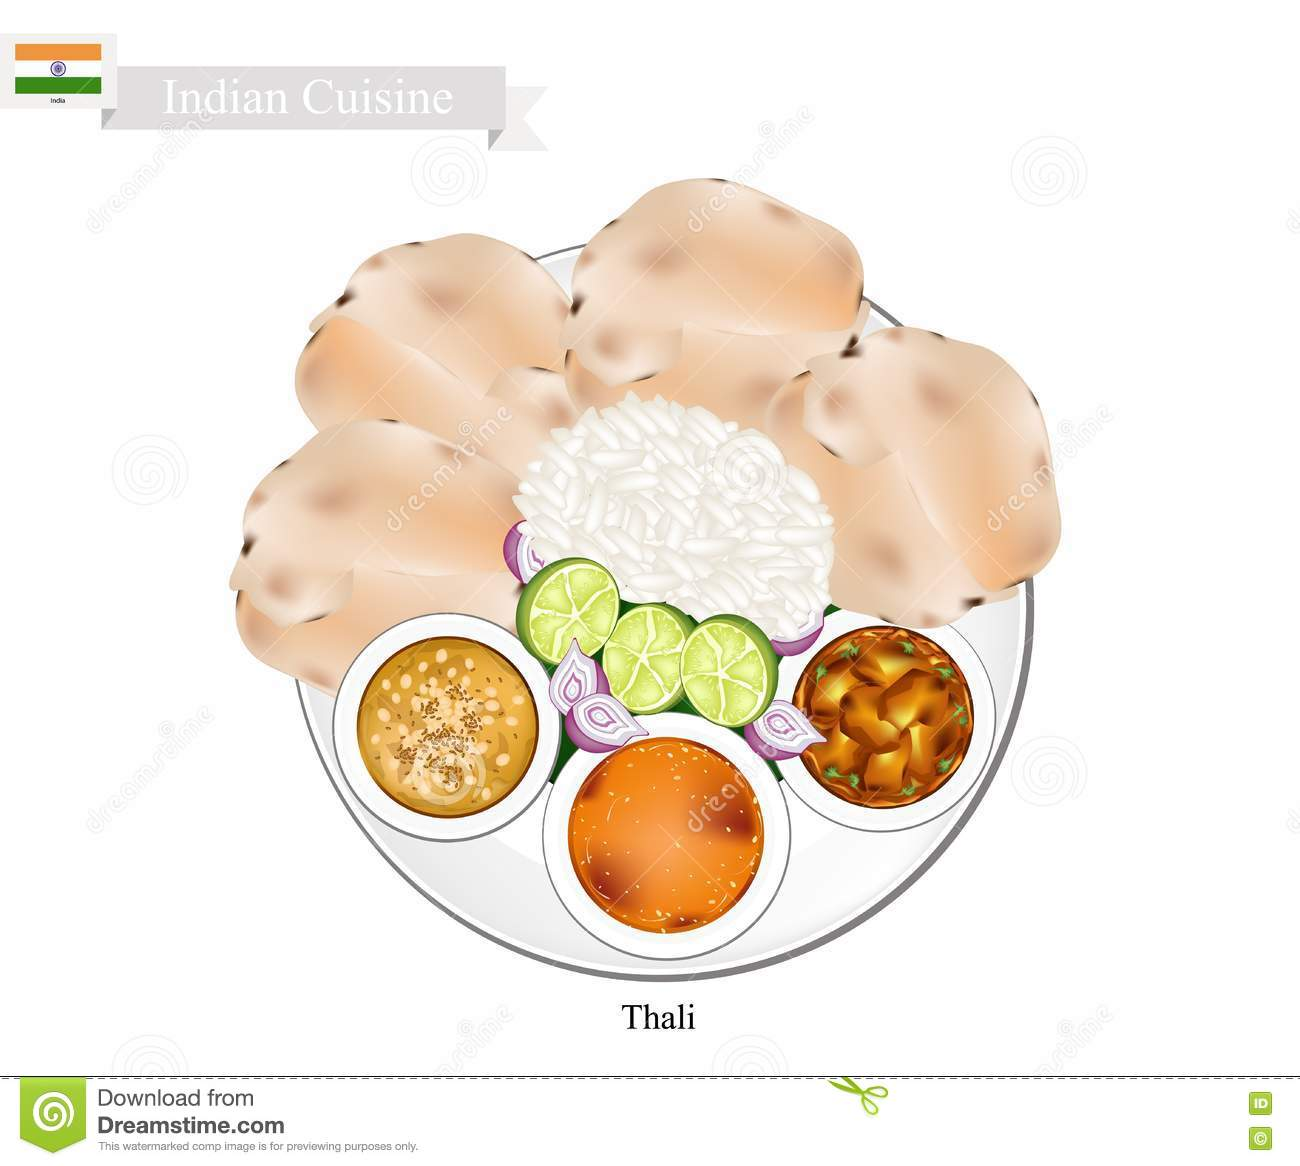 Thali Or Indian Steamed Rice, Flatbread And Lentil Soup Stock